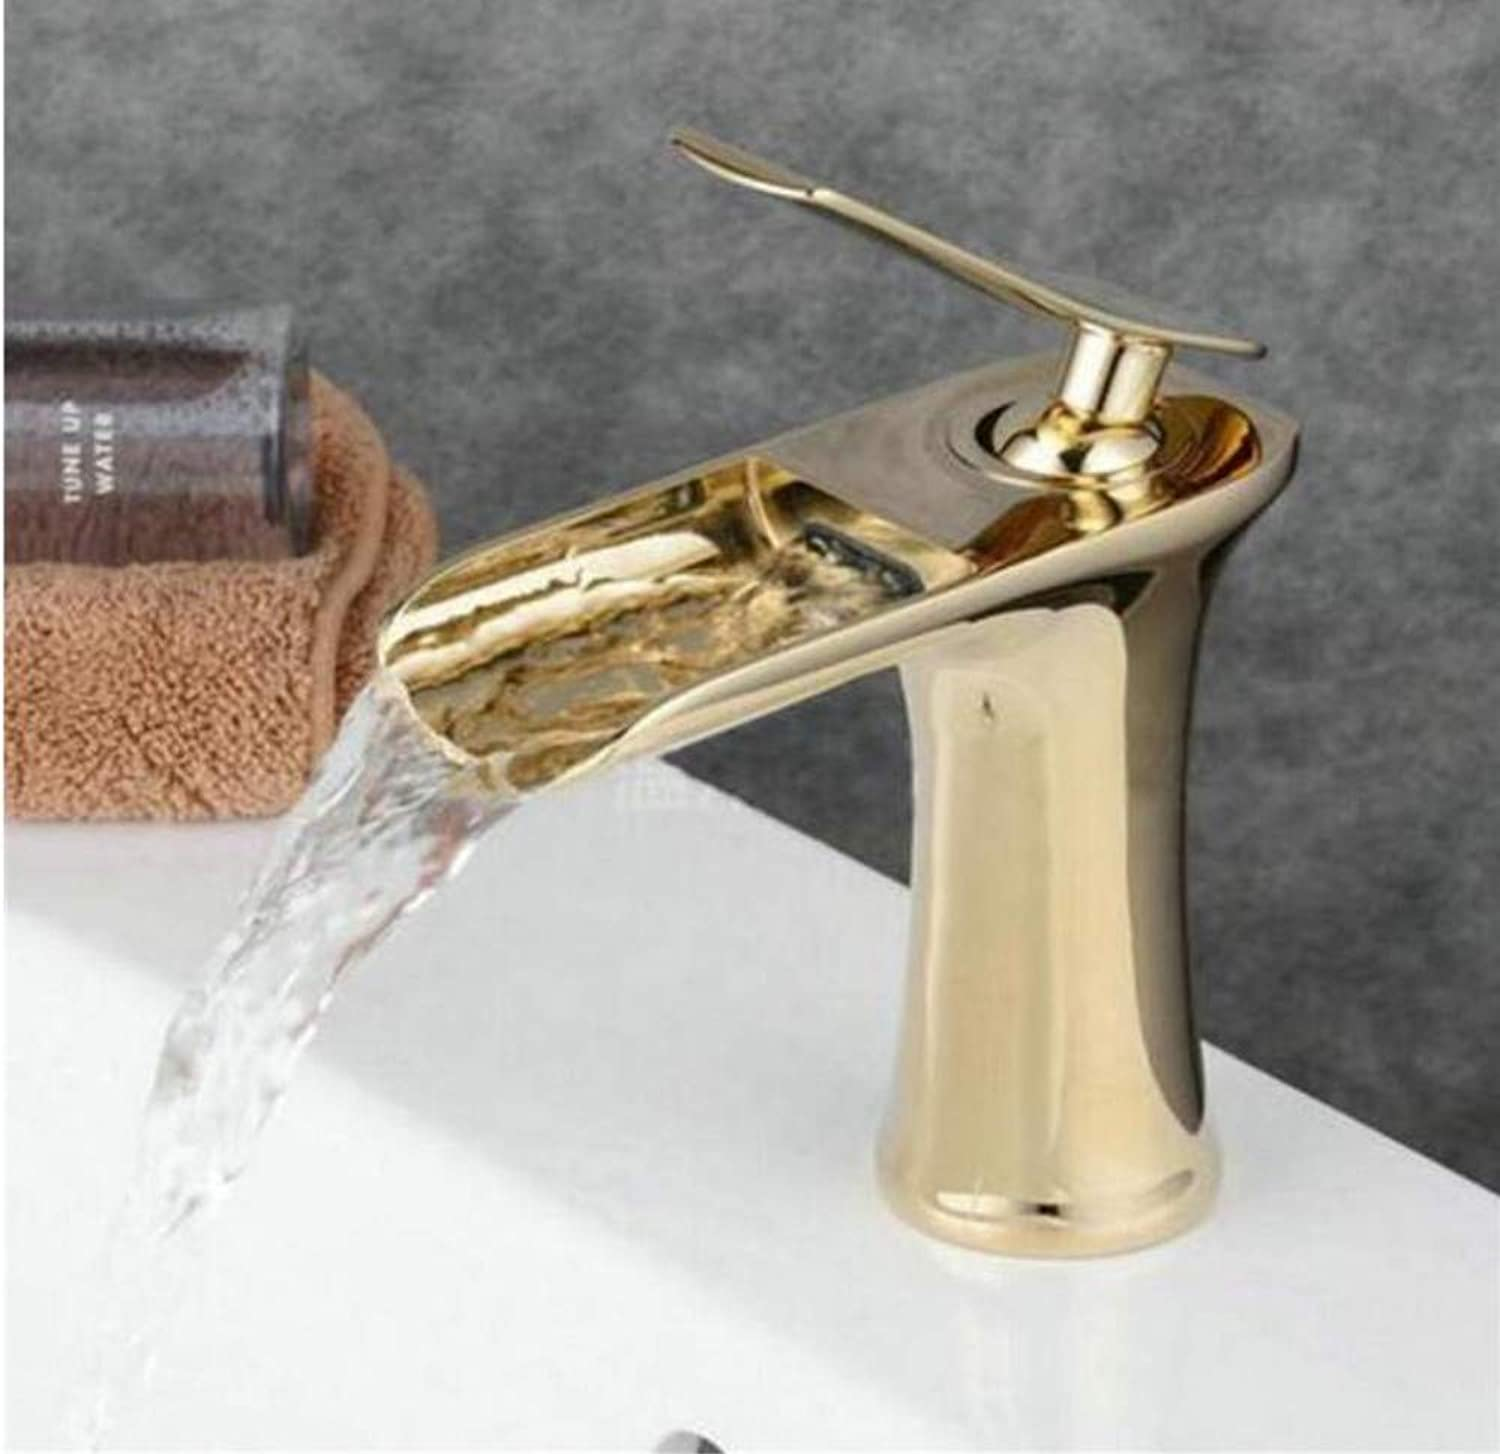 Brass Wall Faucet Chrome Brass Faucettap with Hot and Cold Water Black Brush Nickel Water Mixer